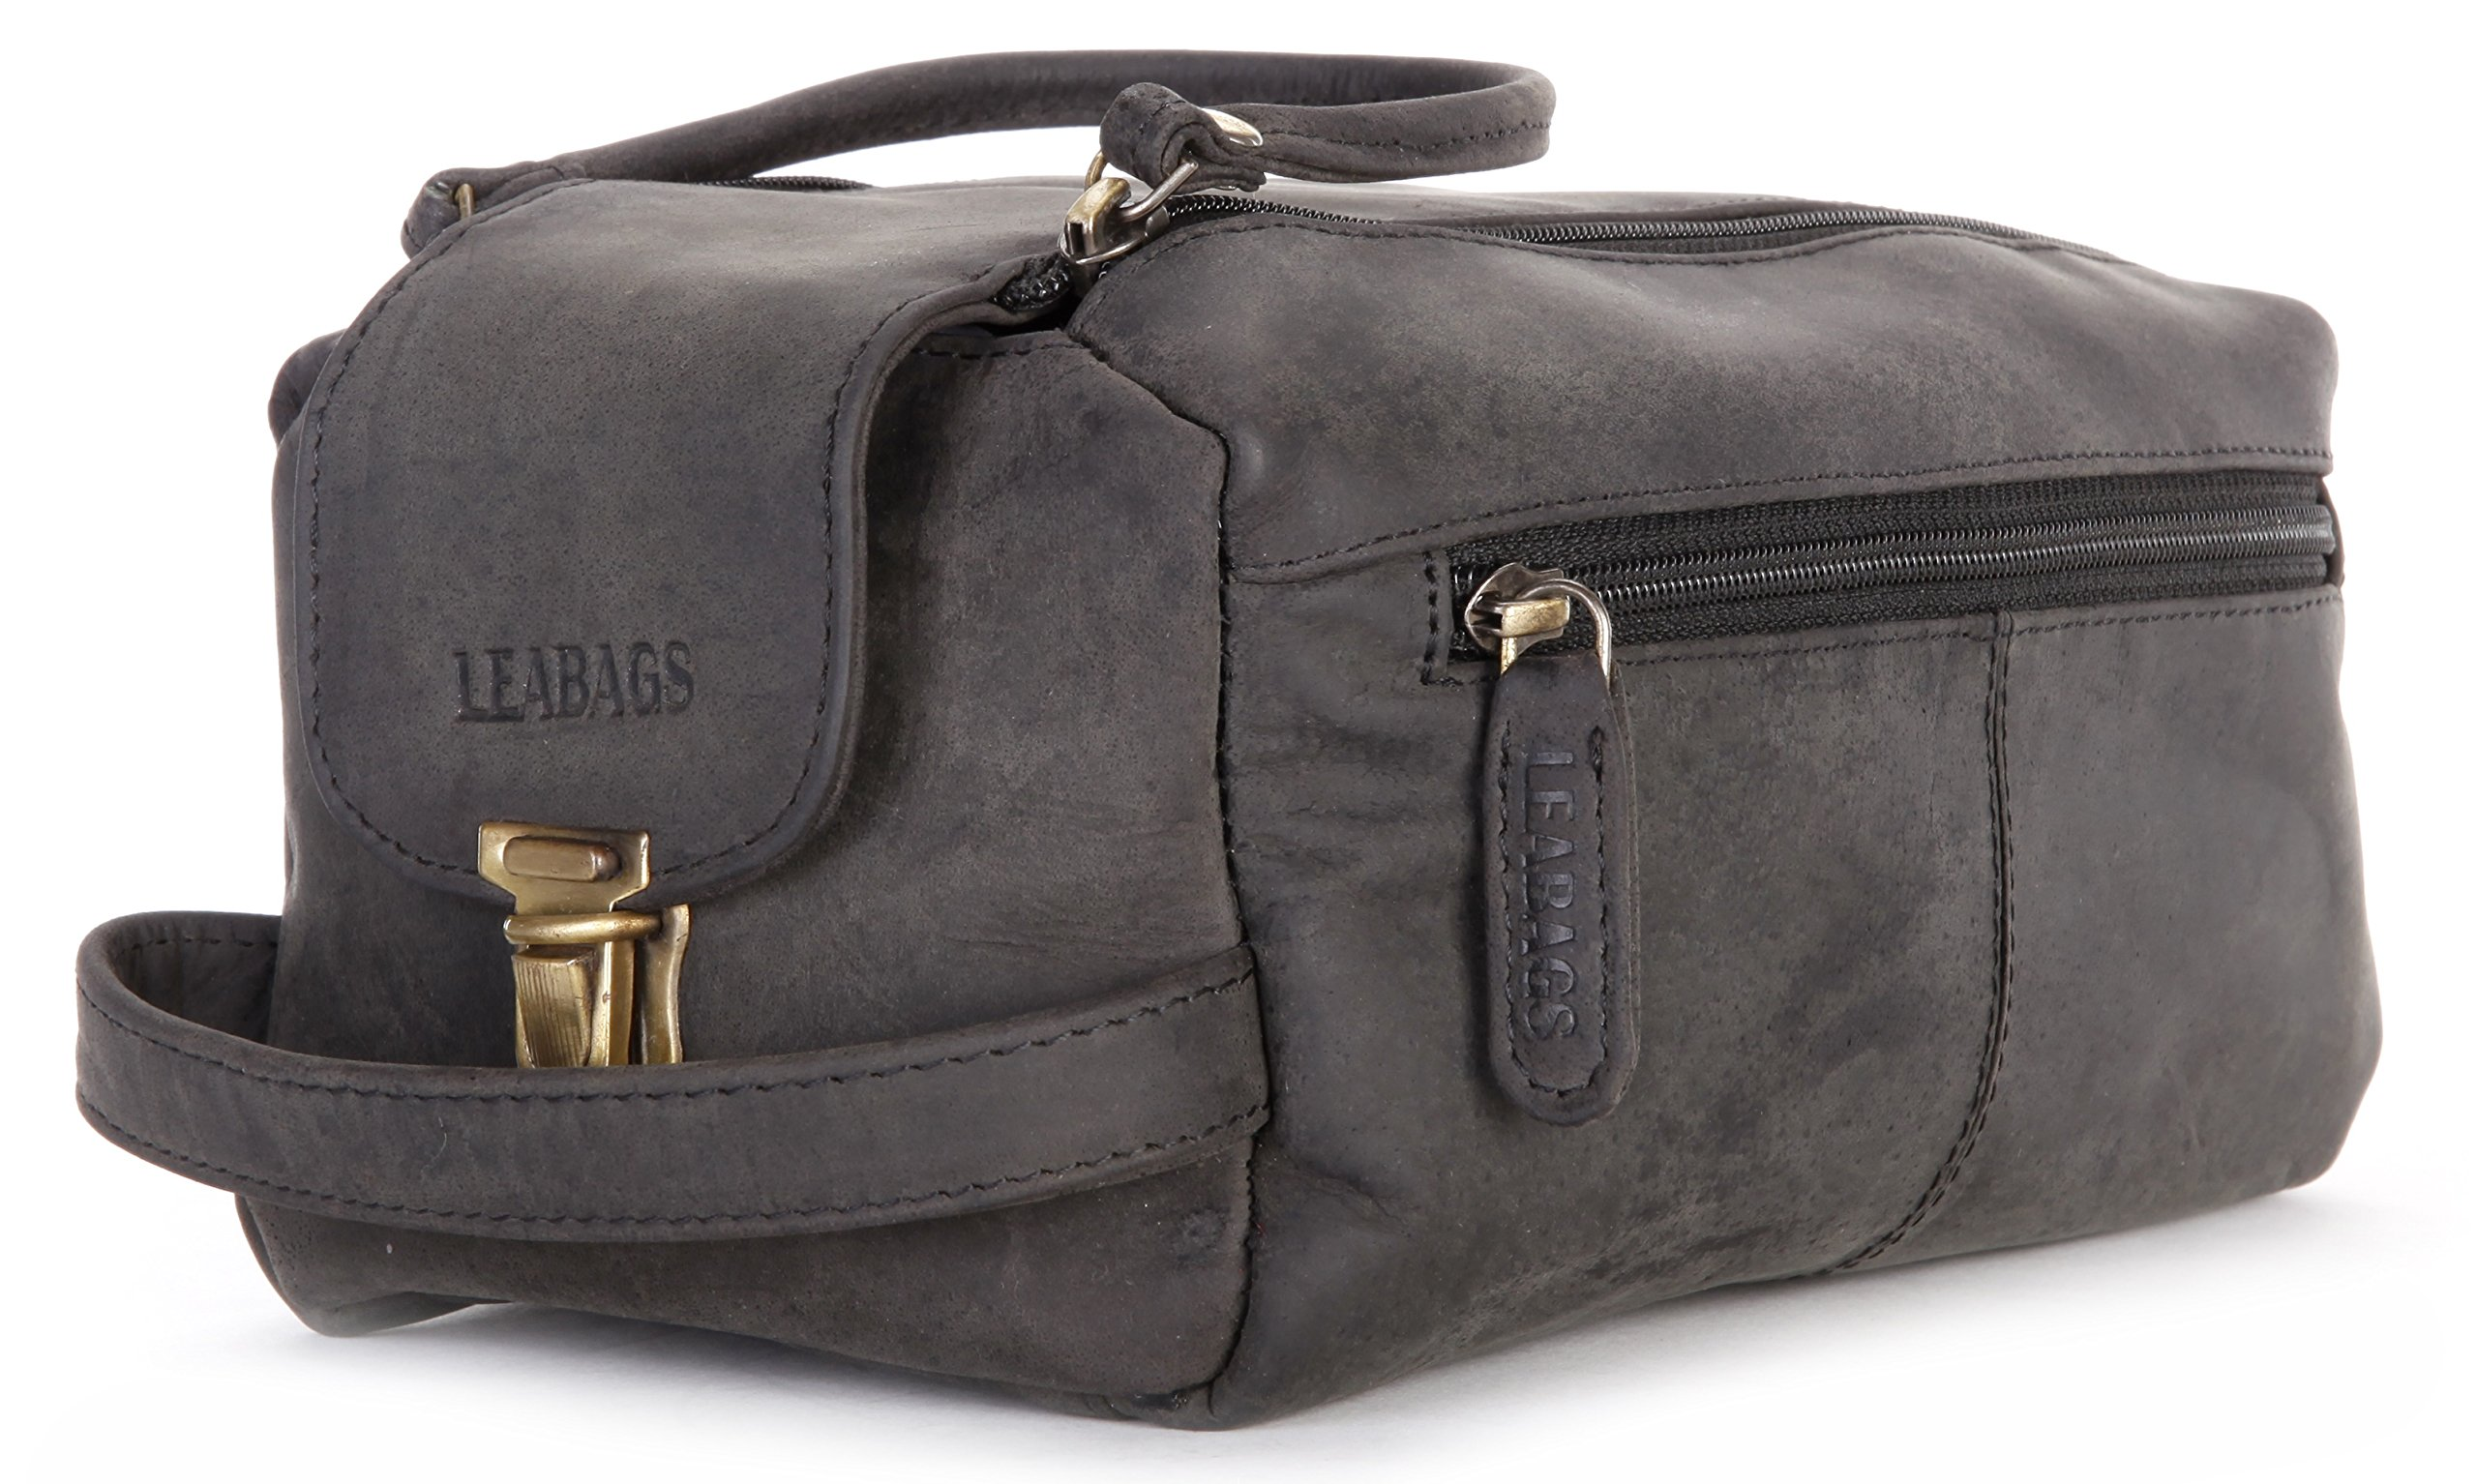 LEABAGS Palm Bay genuine buffalo leather toiletry bag in vintage style - Black